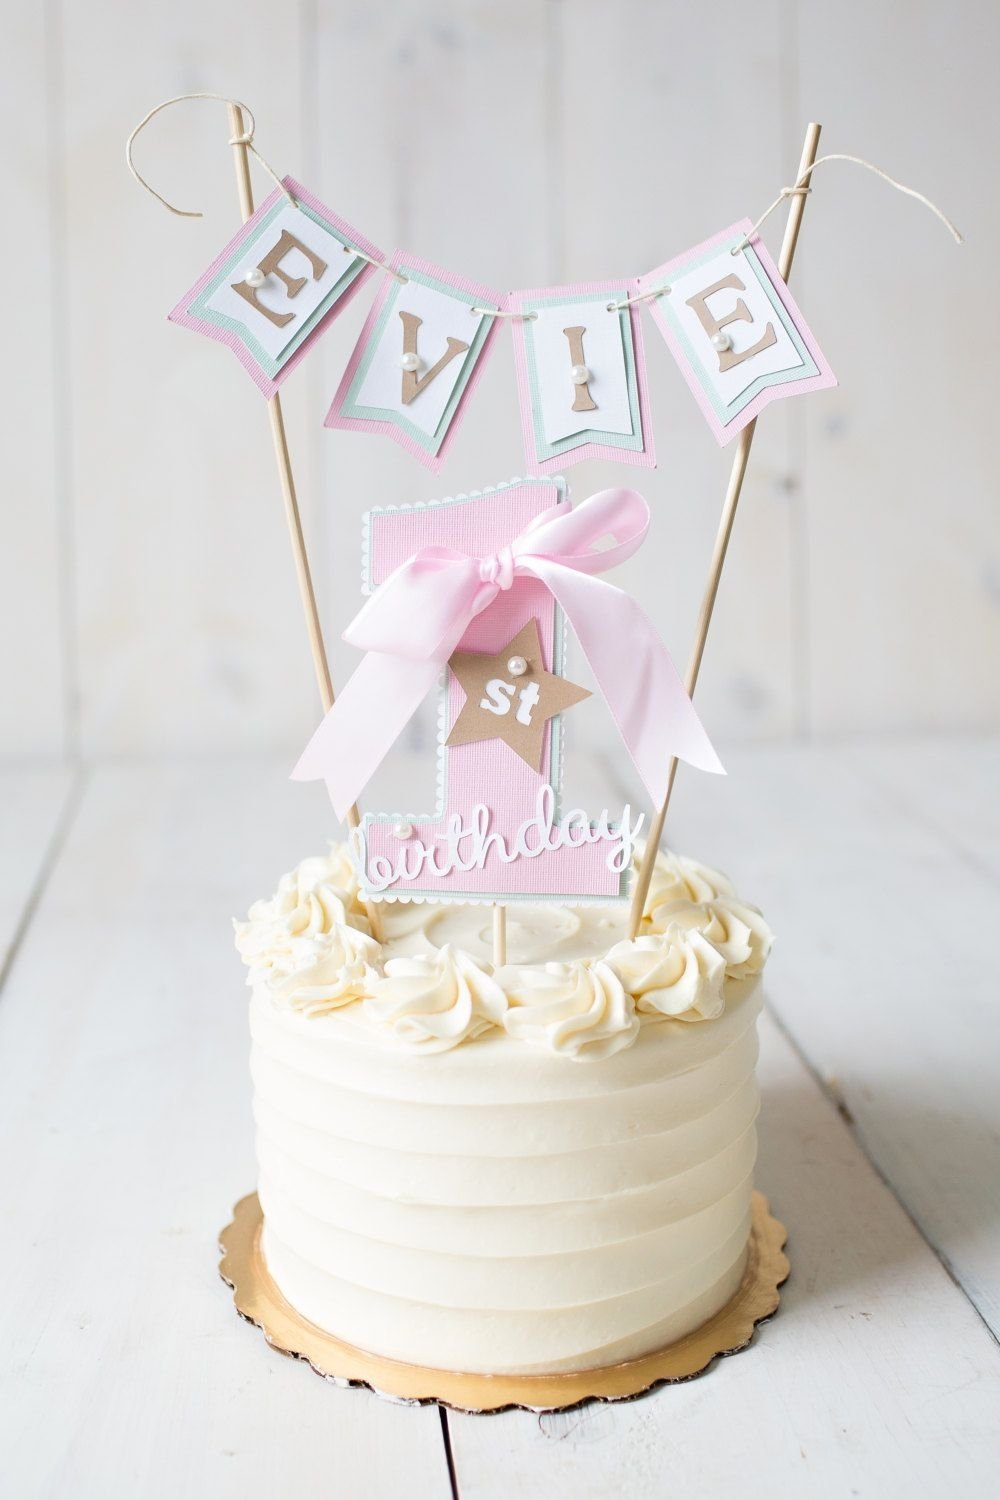 10 Beautiful 1St Birthday Cake Ideas For Girl girl first birthday first birthday decorations 1st birthday cake 2020